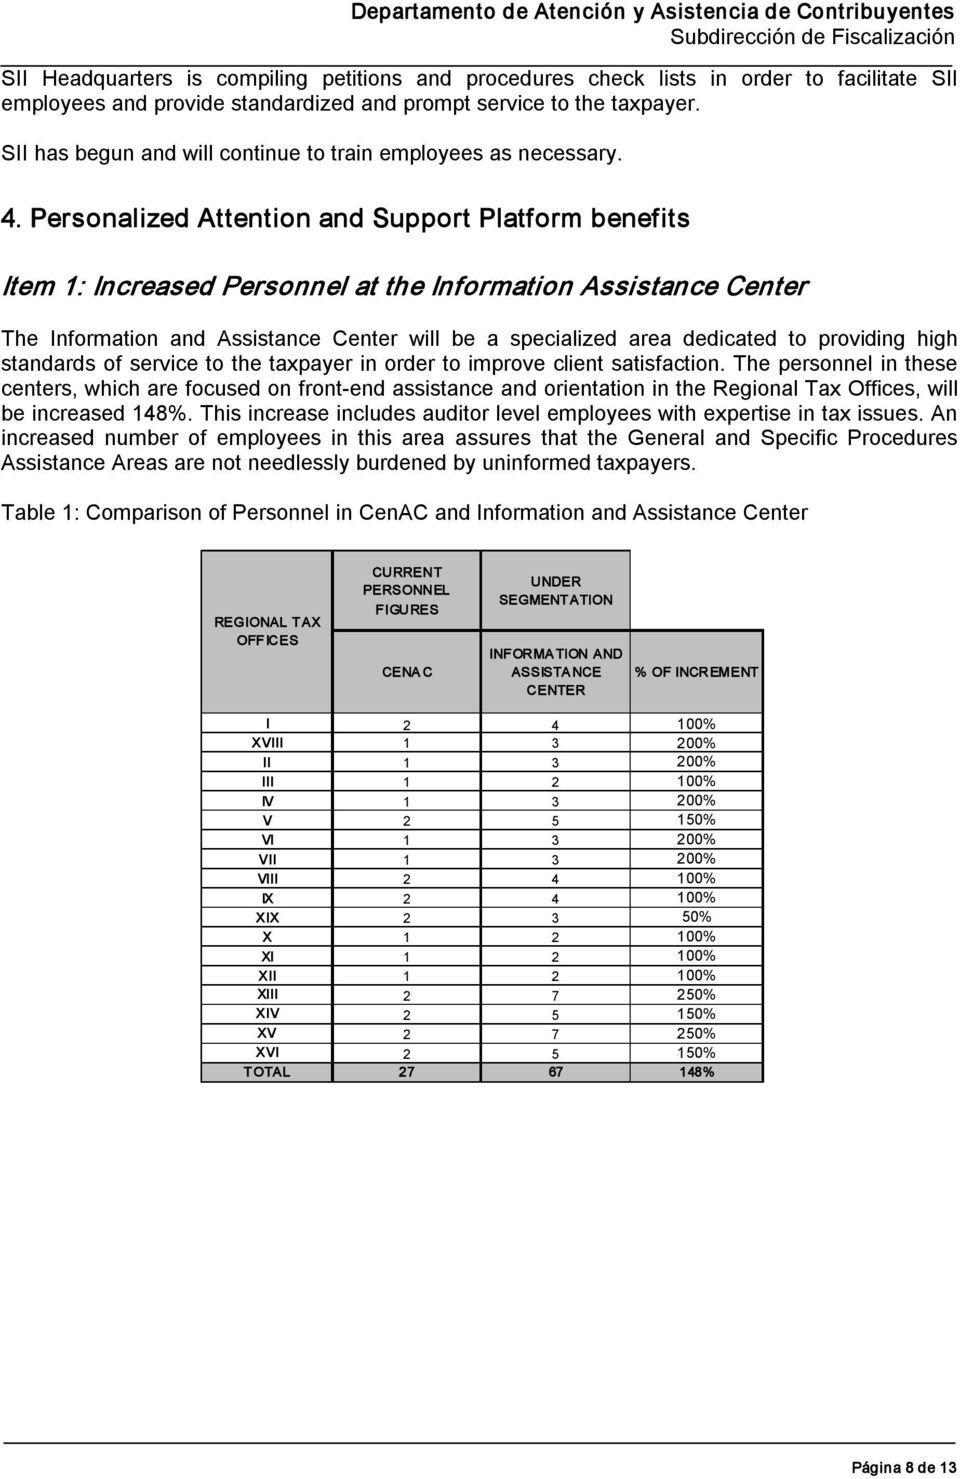 Personalized Attention and Support Platform benefits Item 1: Increased Personnel at the Information Assistance Center The Information and Assistance Center will be a specialized area dedicated to